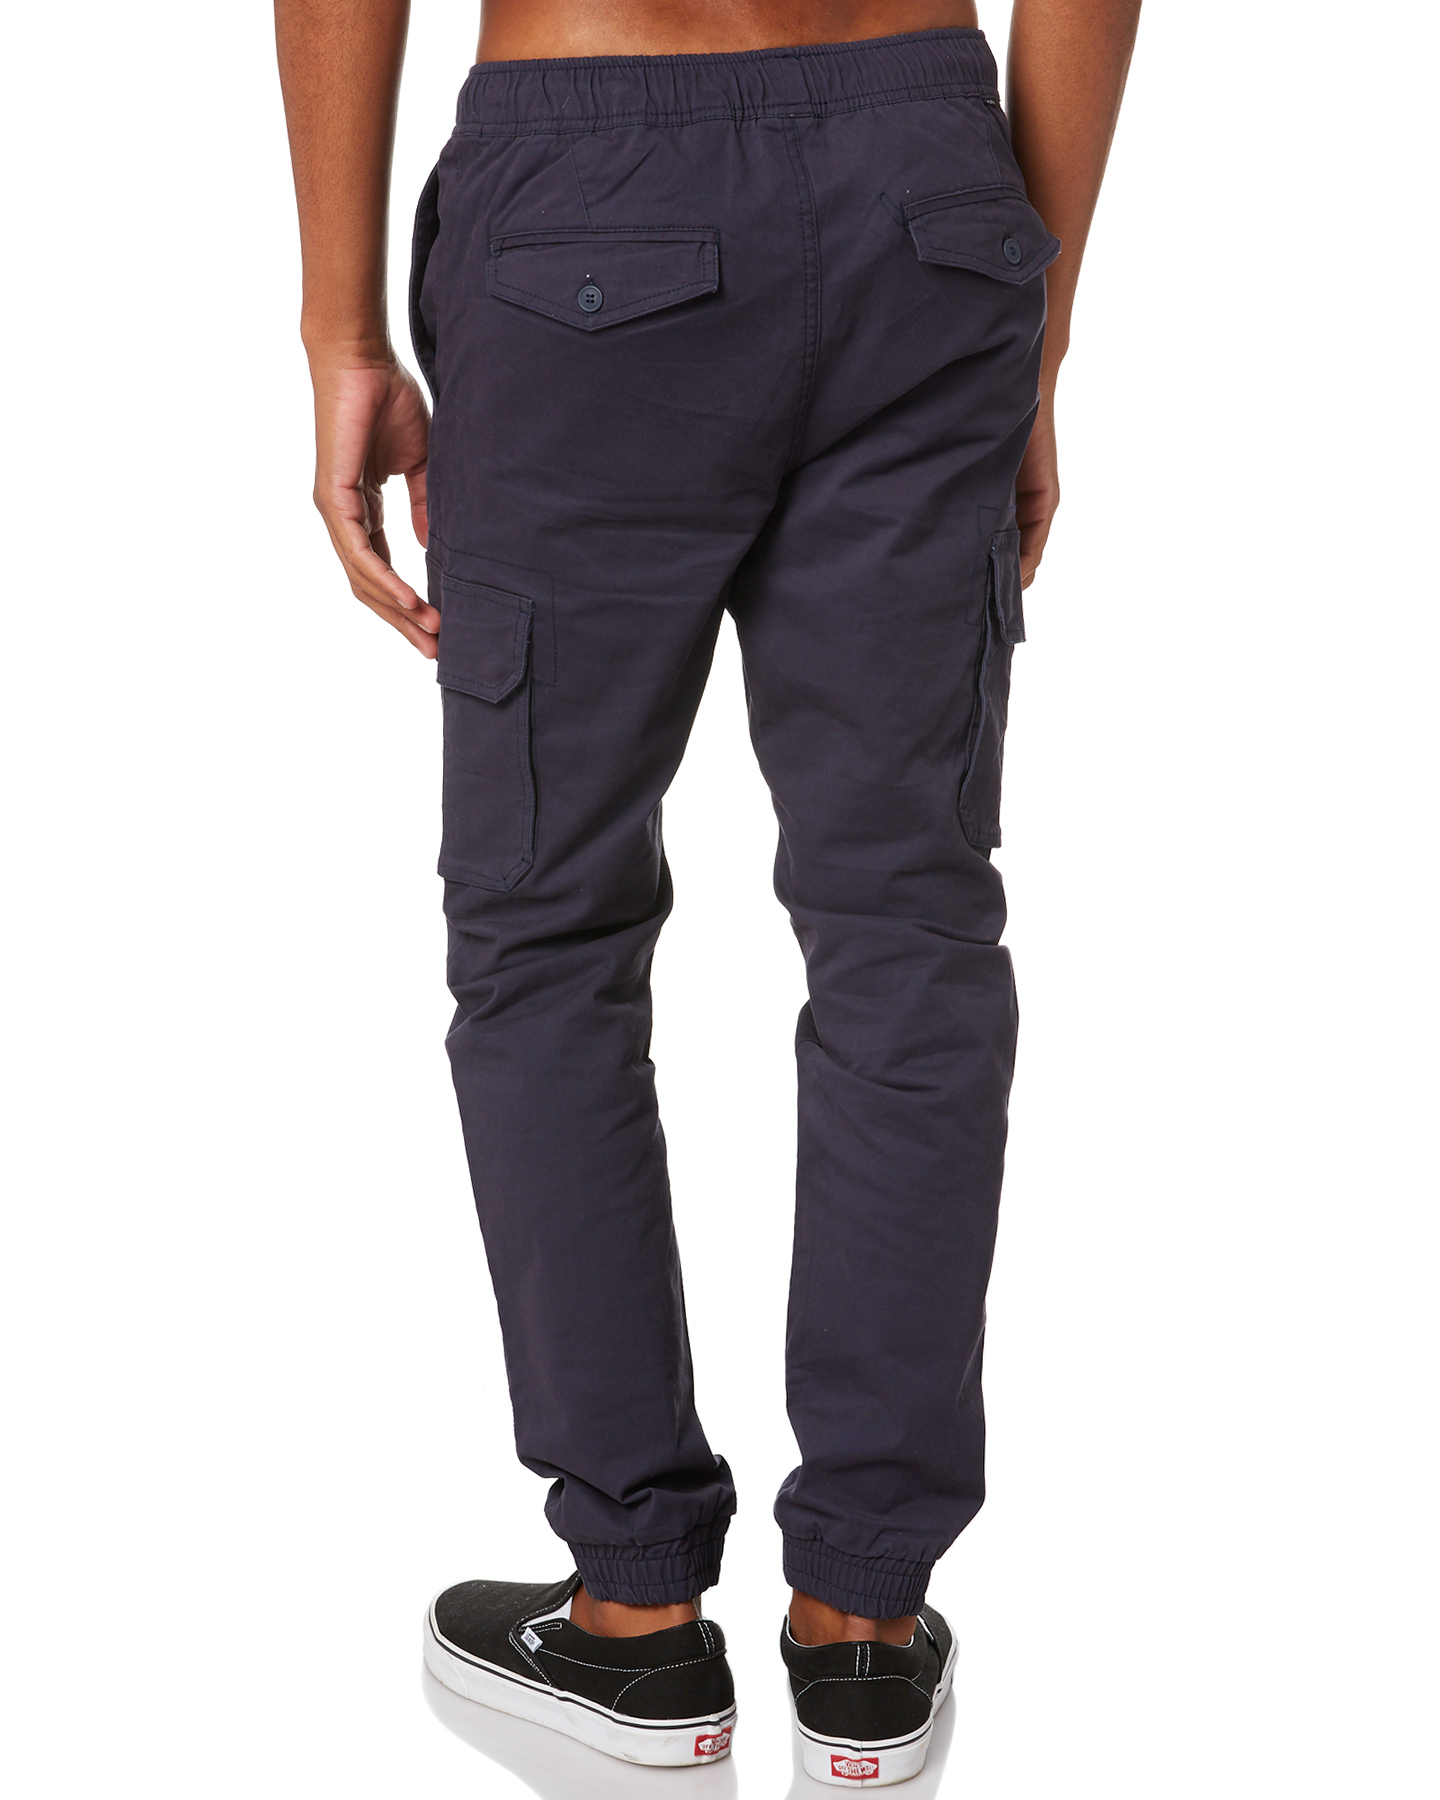 New-Swell-Men-039-s-Blunt-Cargo-Mens-Jogger-Pant-Cotton-Elastane-Green thumbnail 23